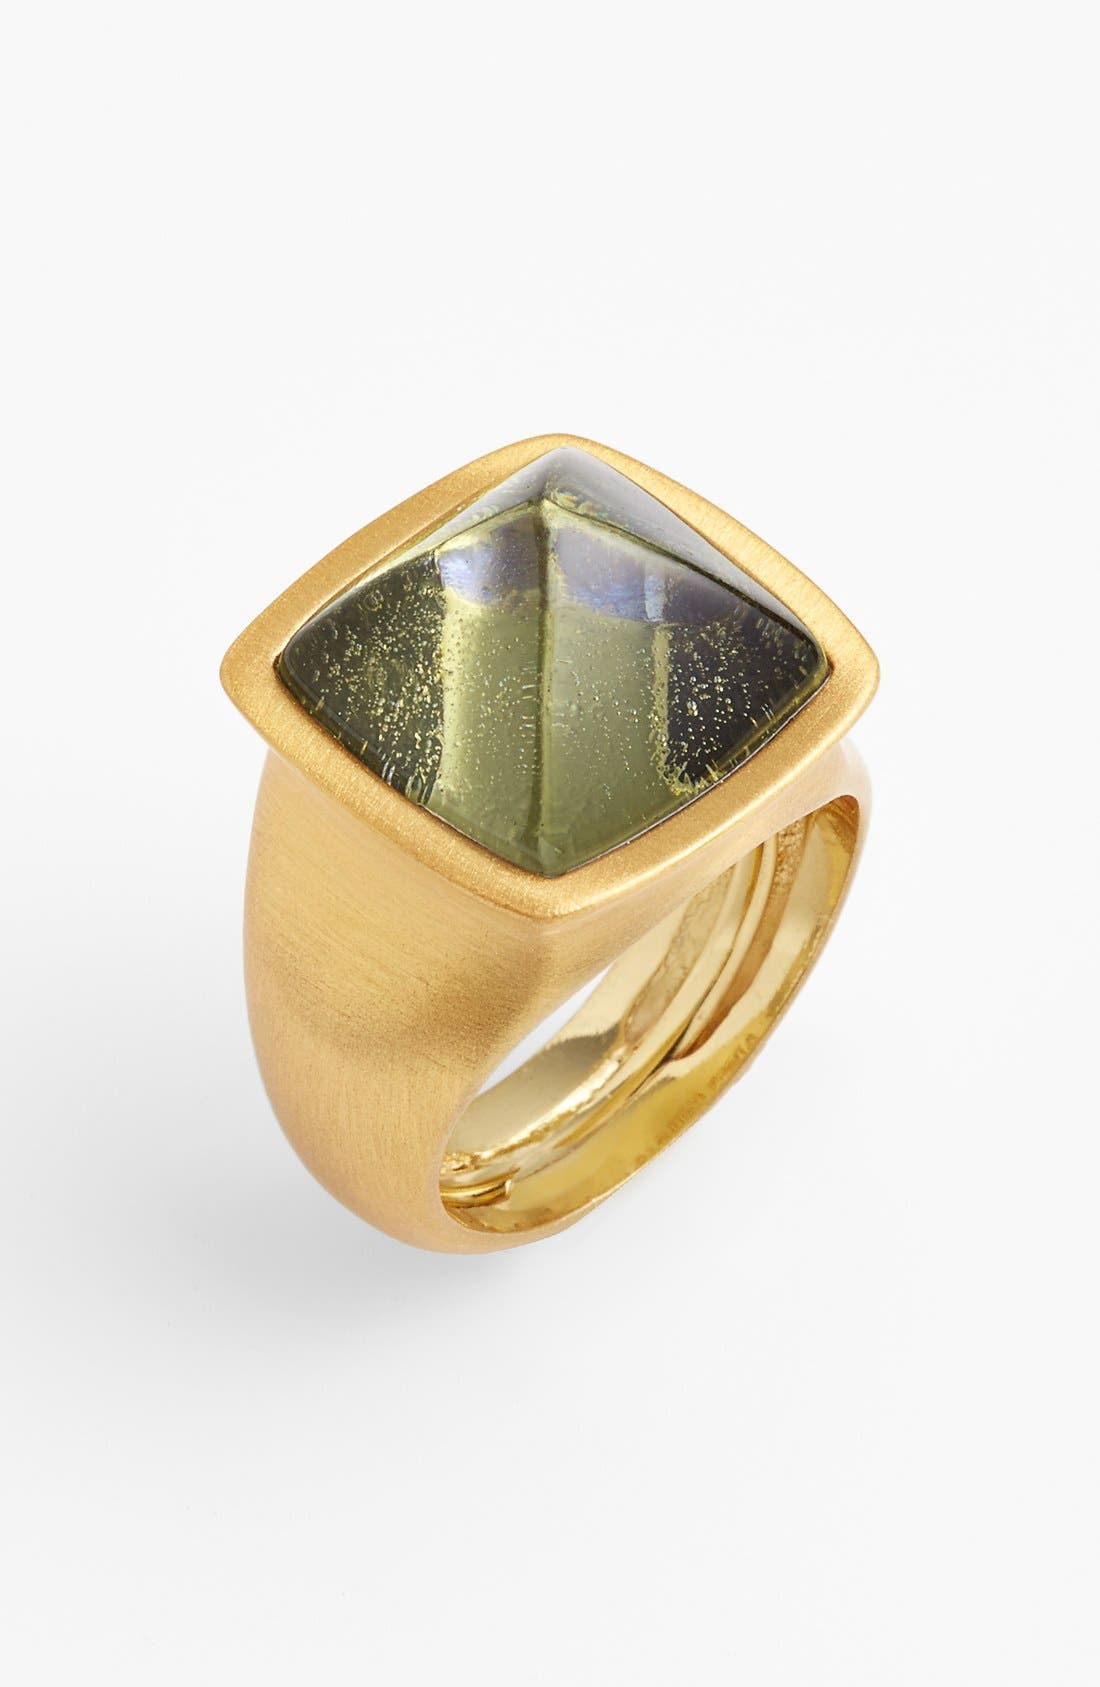 Main Image - Vince Camuto 'Lucid Dreams' Stone Ring